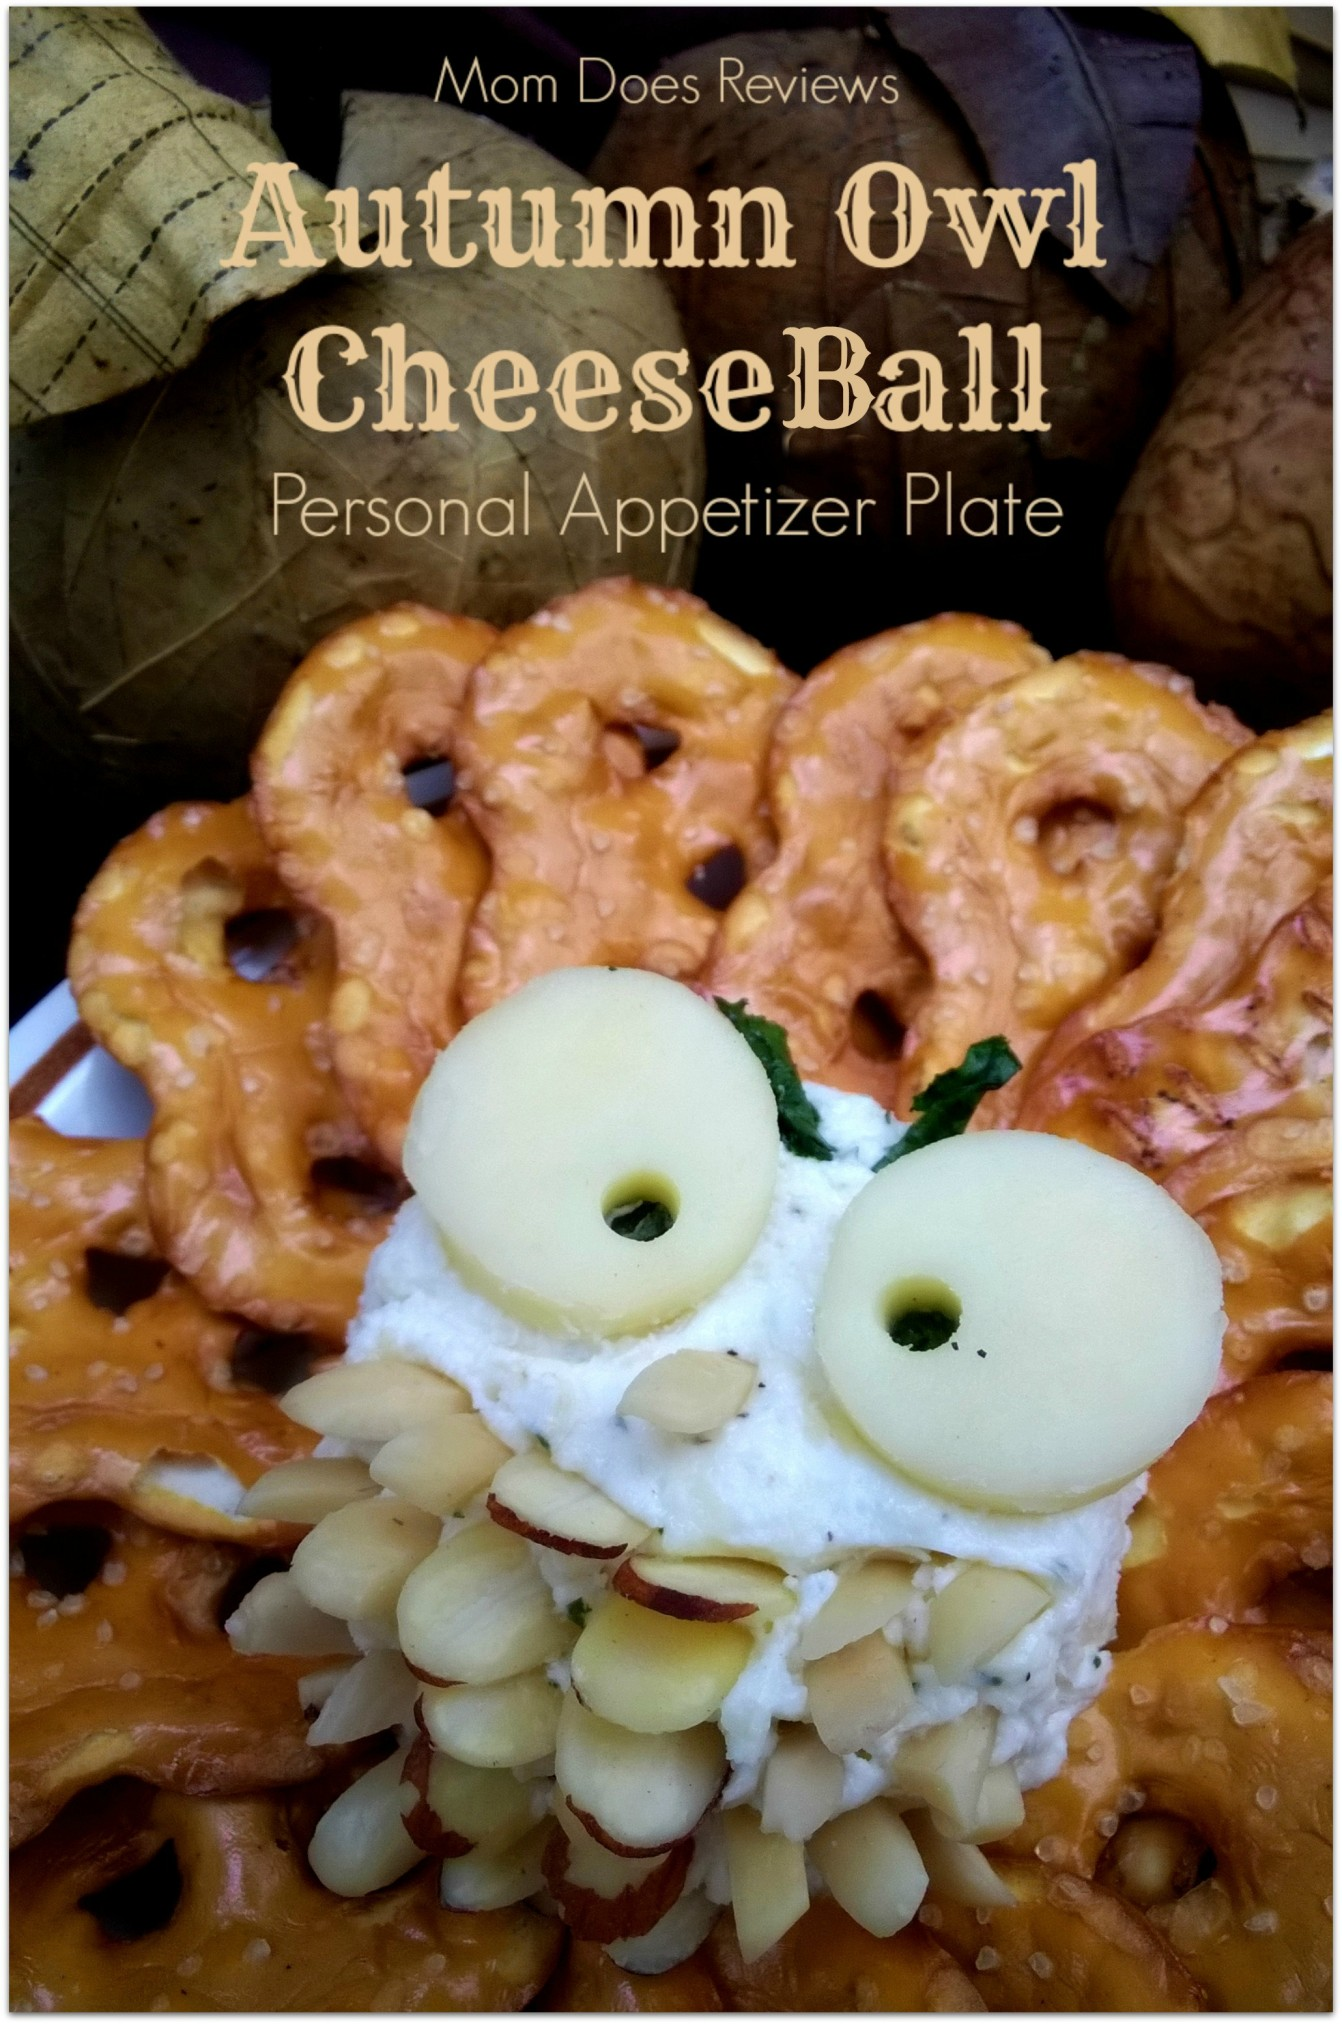 Owl Cheese Ball #Thanksgiving #Autumn #Appetizer #CheeseBall #Owls #OwlLove & Autumn Owl Cheese Ball ~ Personal Appetizer Plate #Recipe -